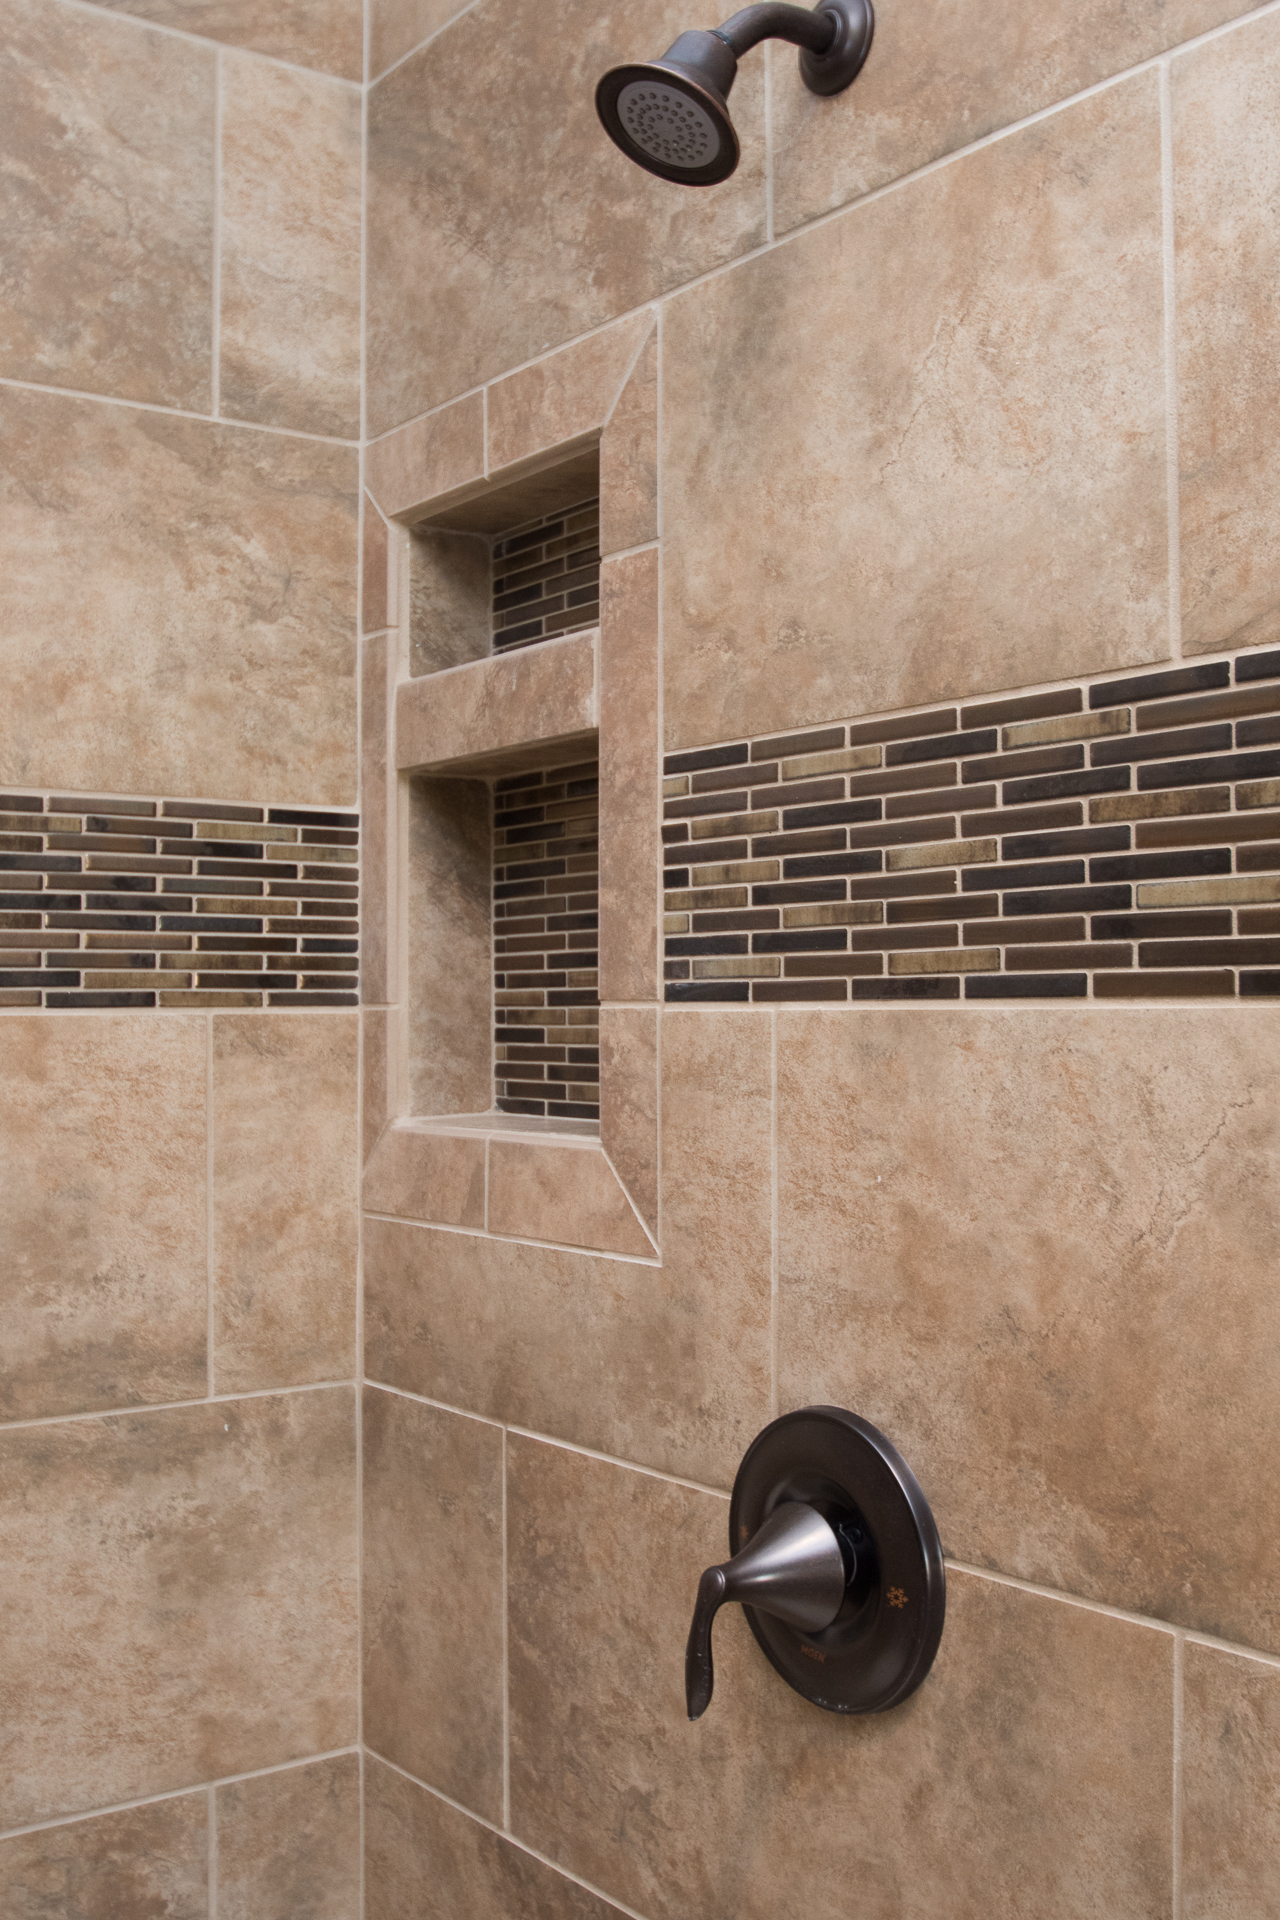 Bathrooms harlow builders inc stonefire noce 12x24 brick lay ceramic tile with accent strip moen eva oil dailygadgetfo Choice Image